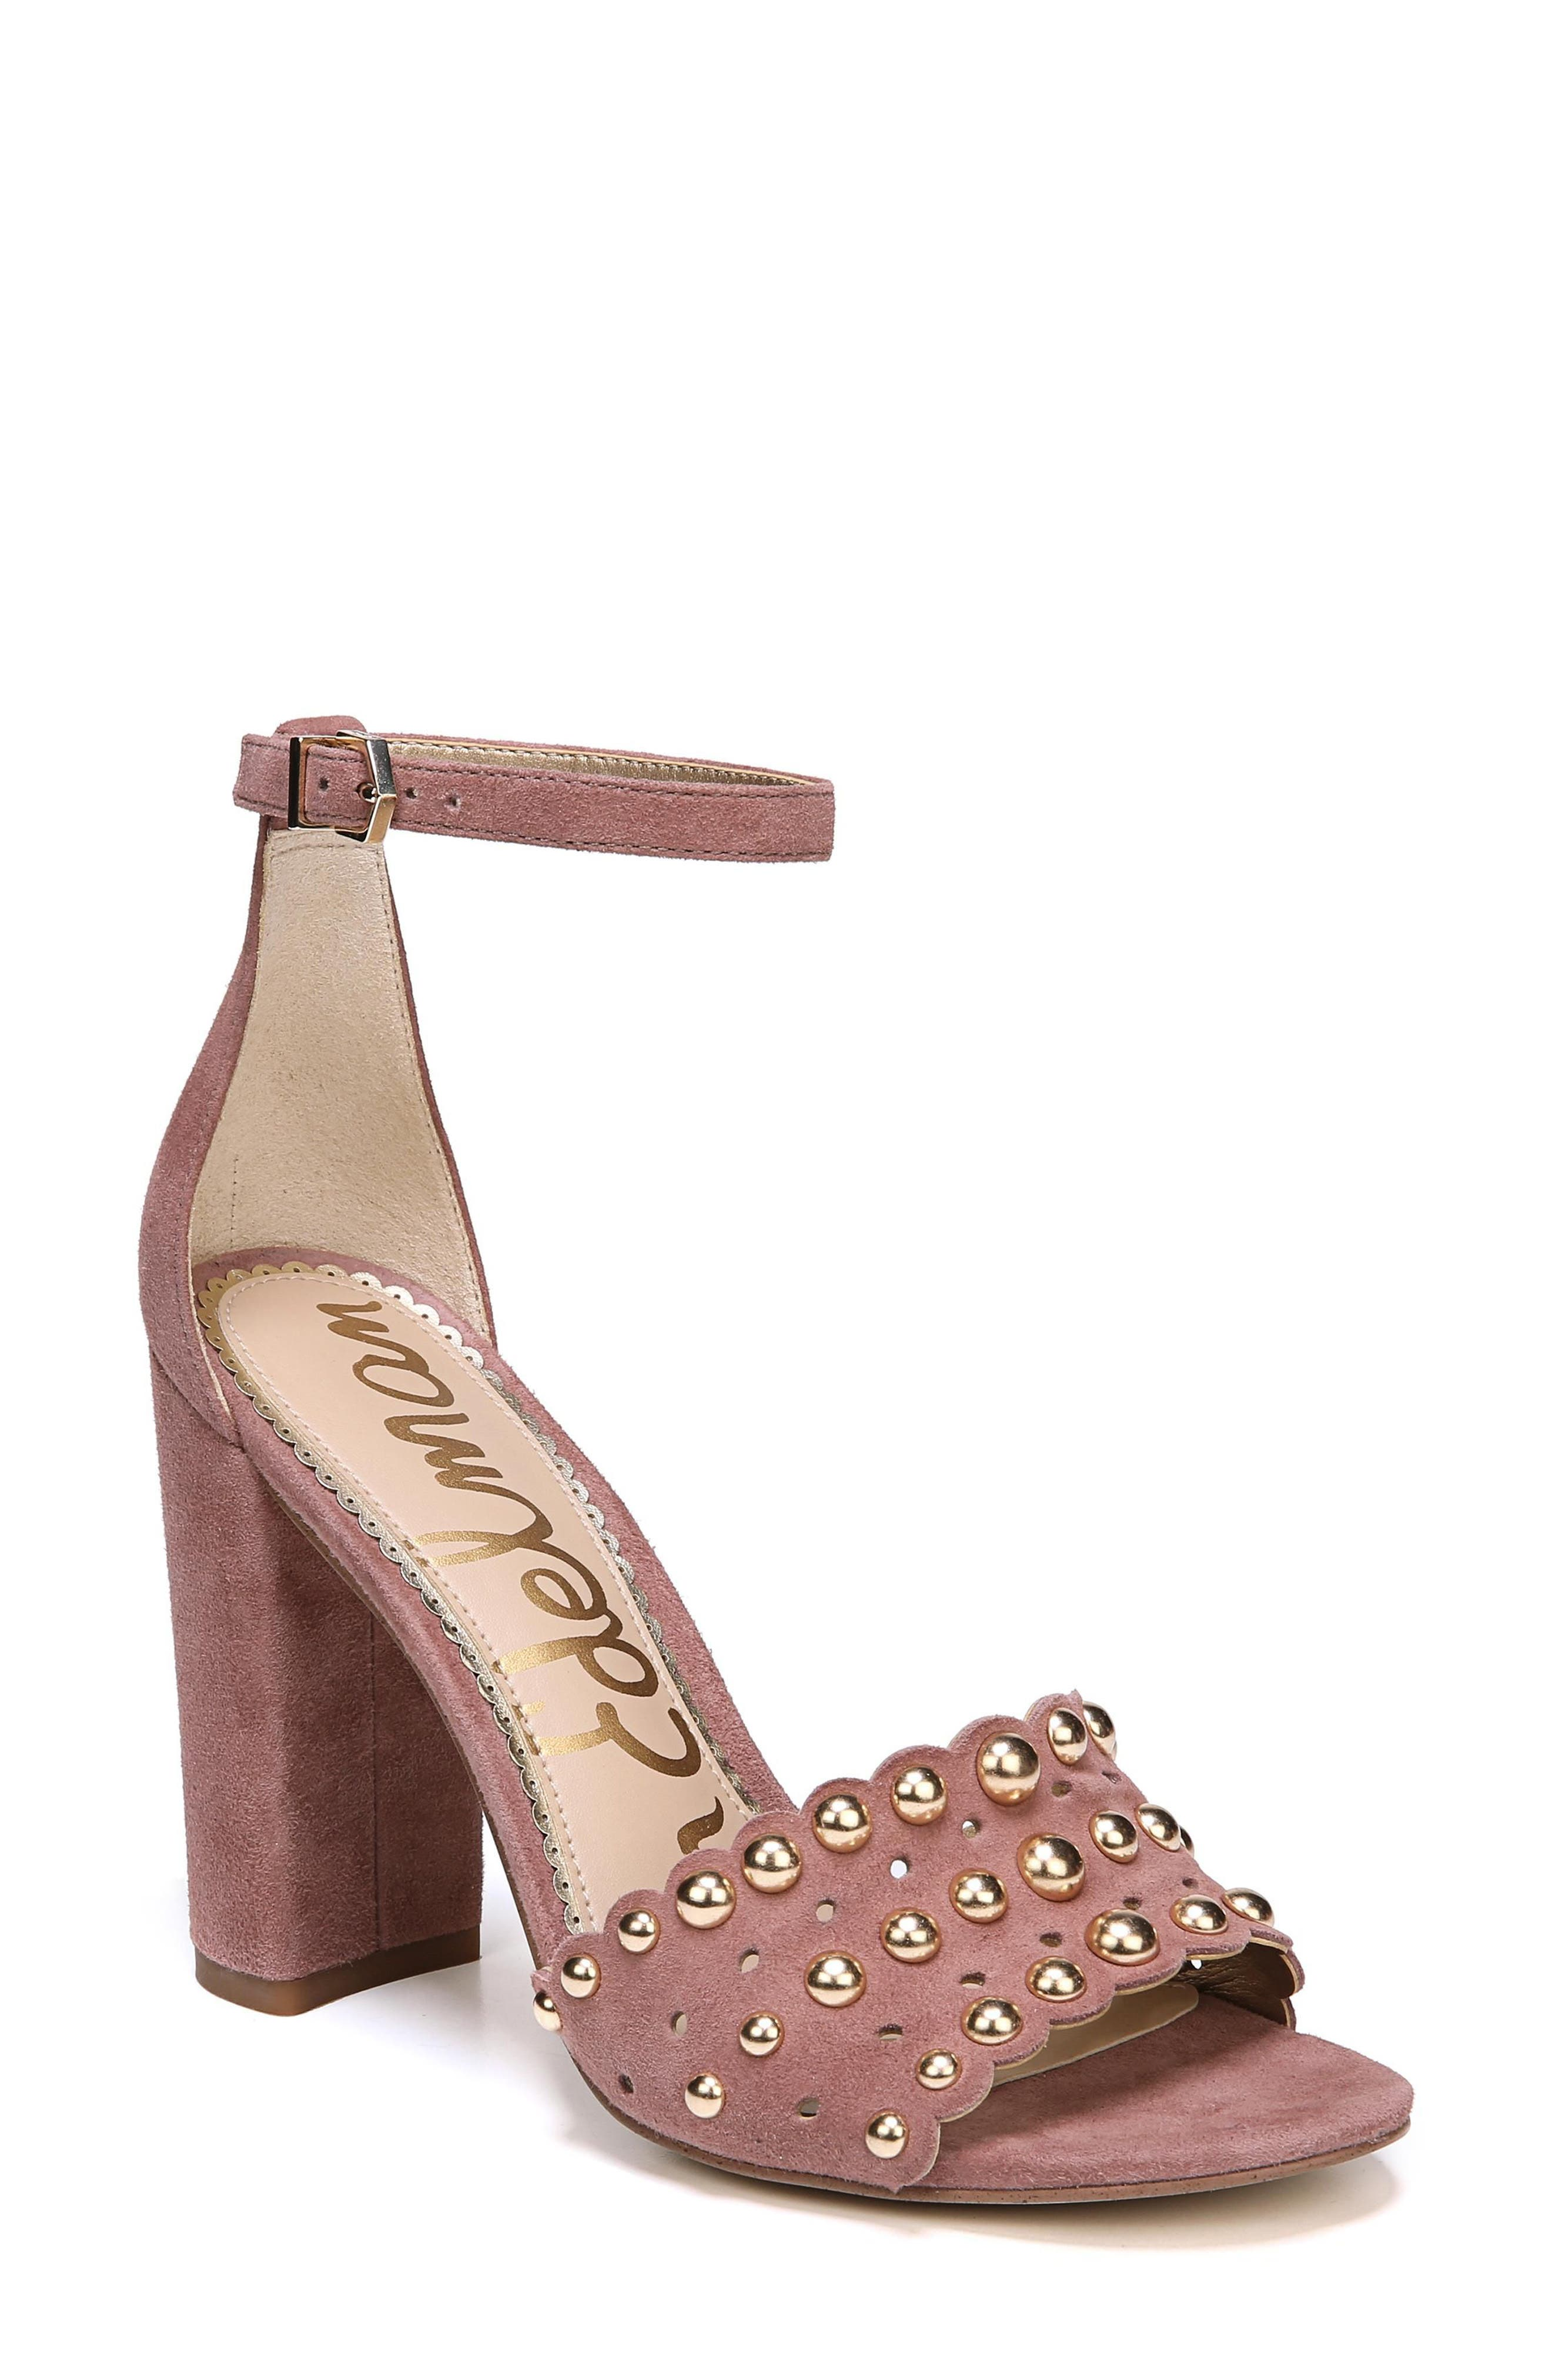 Yaria Studded Block Heel Sandal,                         Main,                         color, Dusty Rose Suede